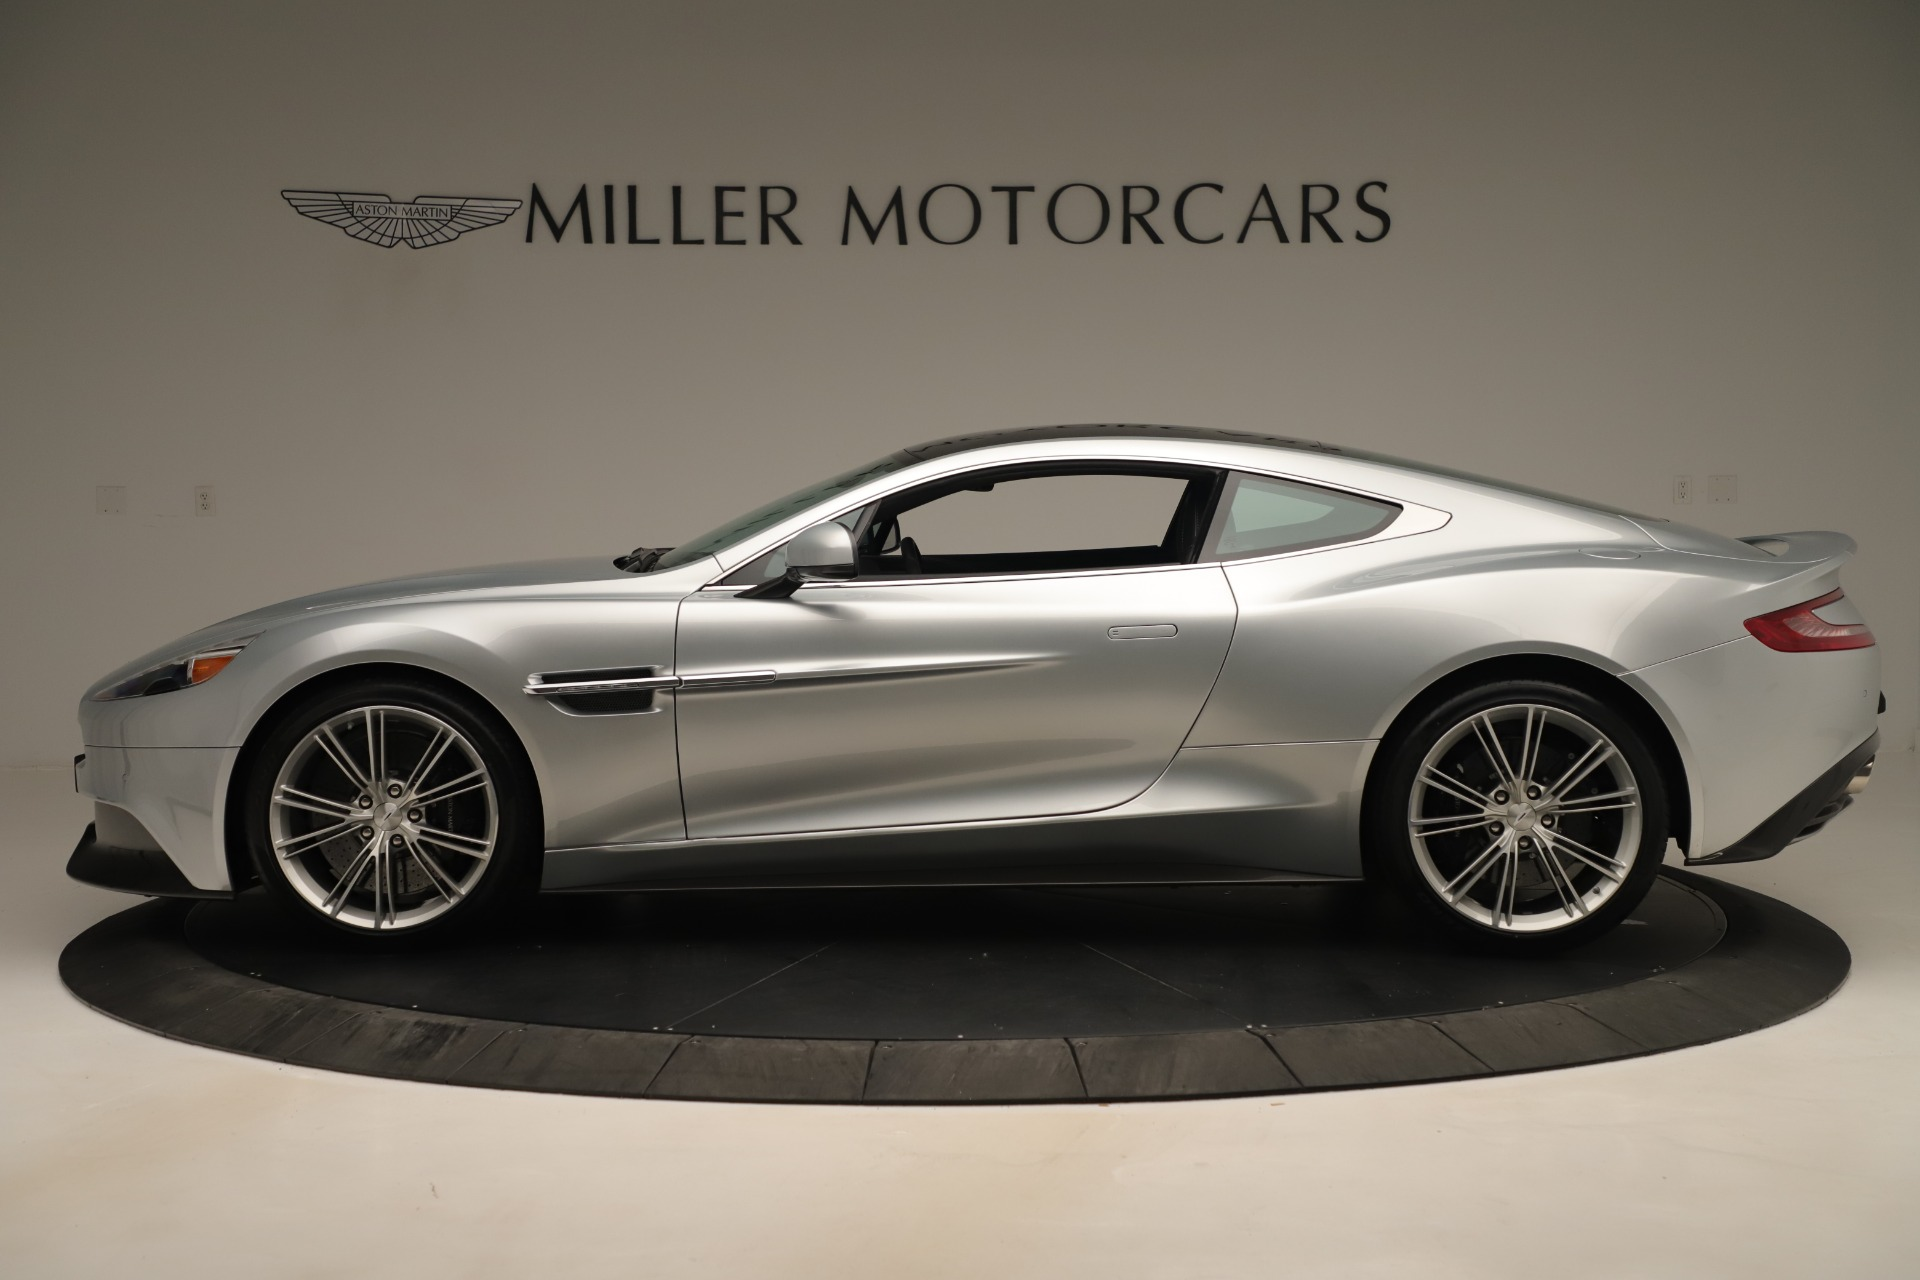 Used 2014 Aston Martin Vanquish Coupe For Sale In Greenwich, CT 3445_p2